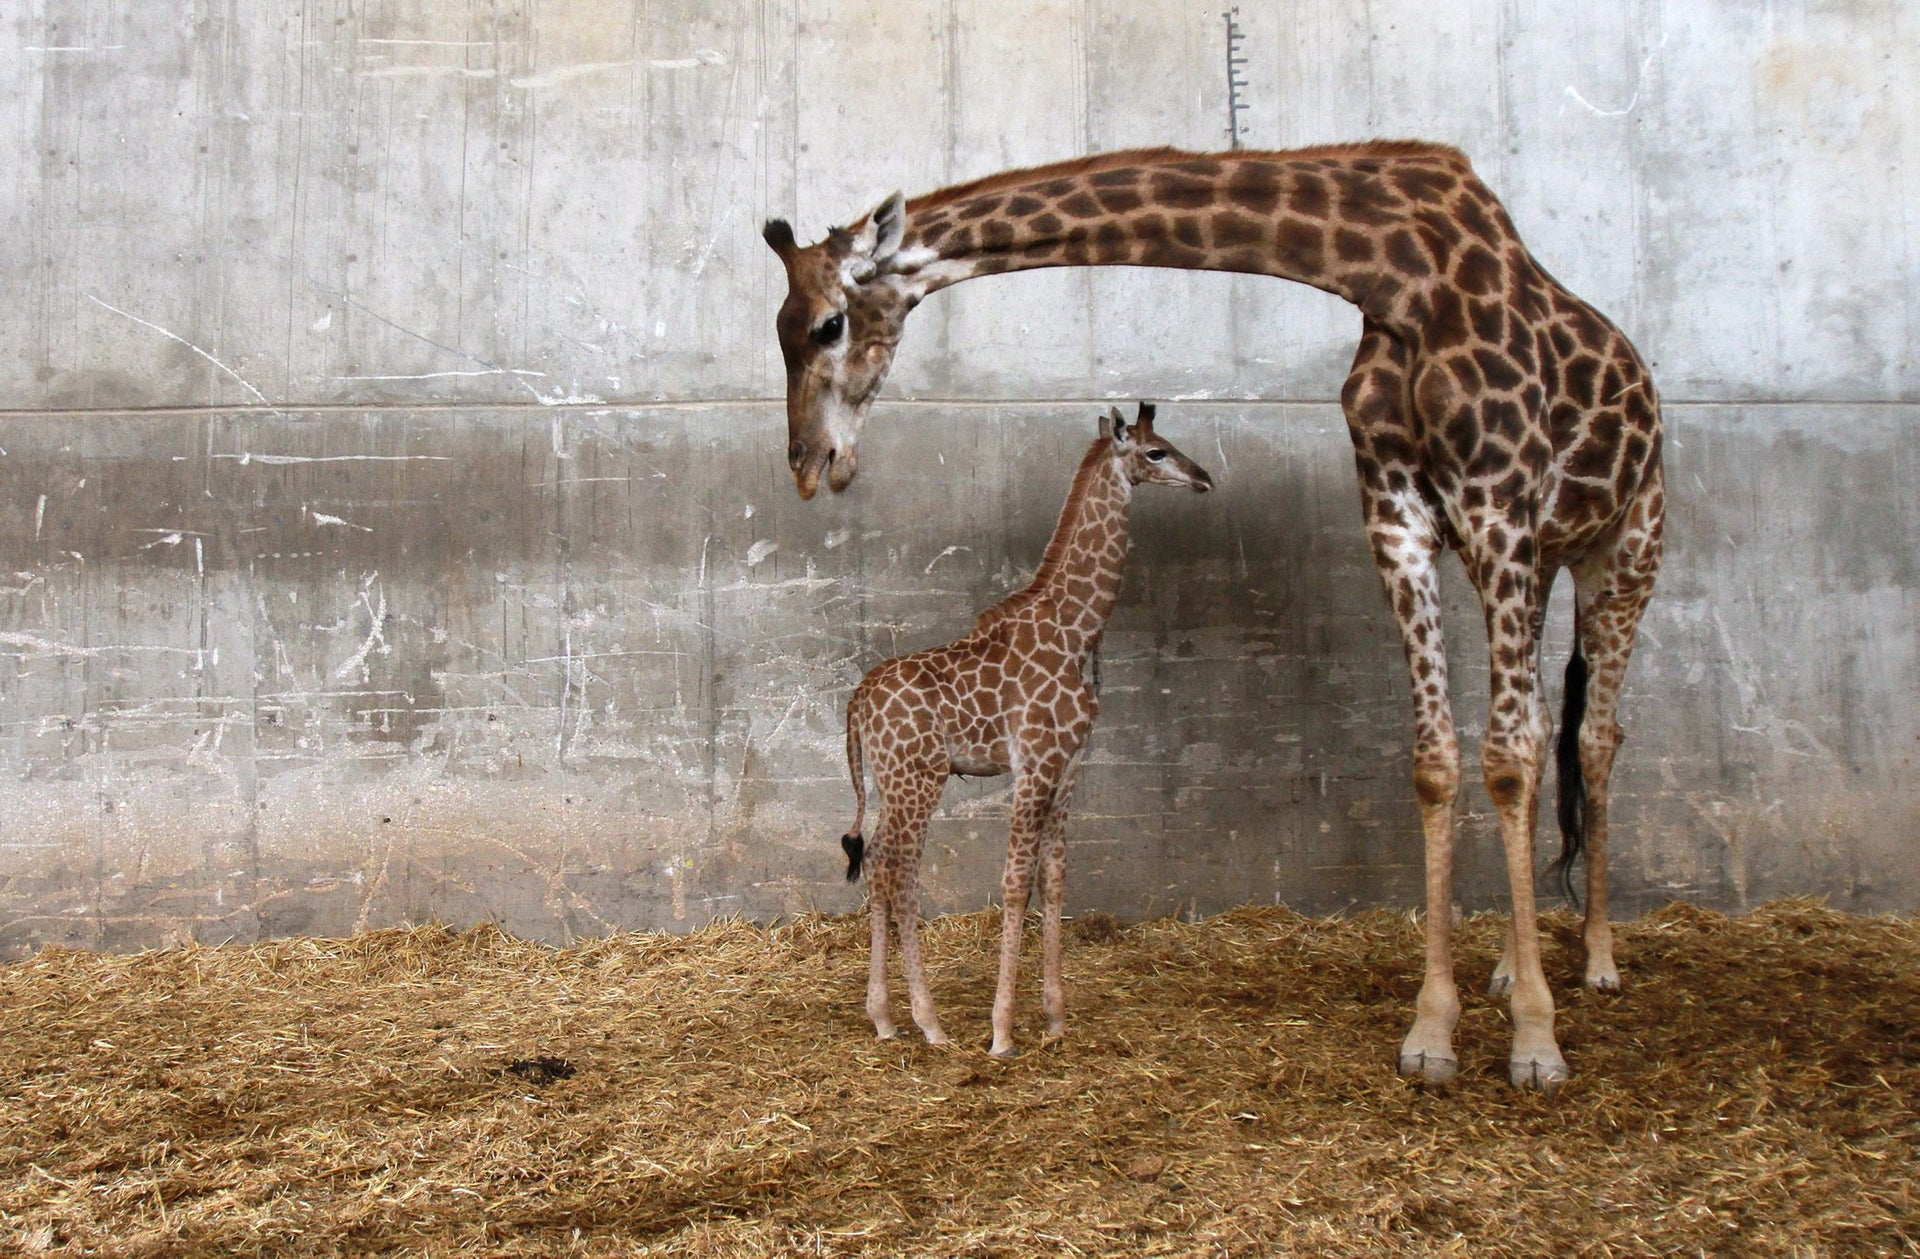 Adis, two weeks old baby giraffe with his mother in Biblical Zoo in Jerusalem, April 10, 2016.